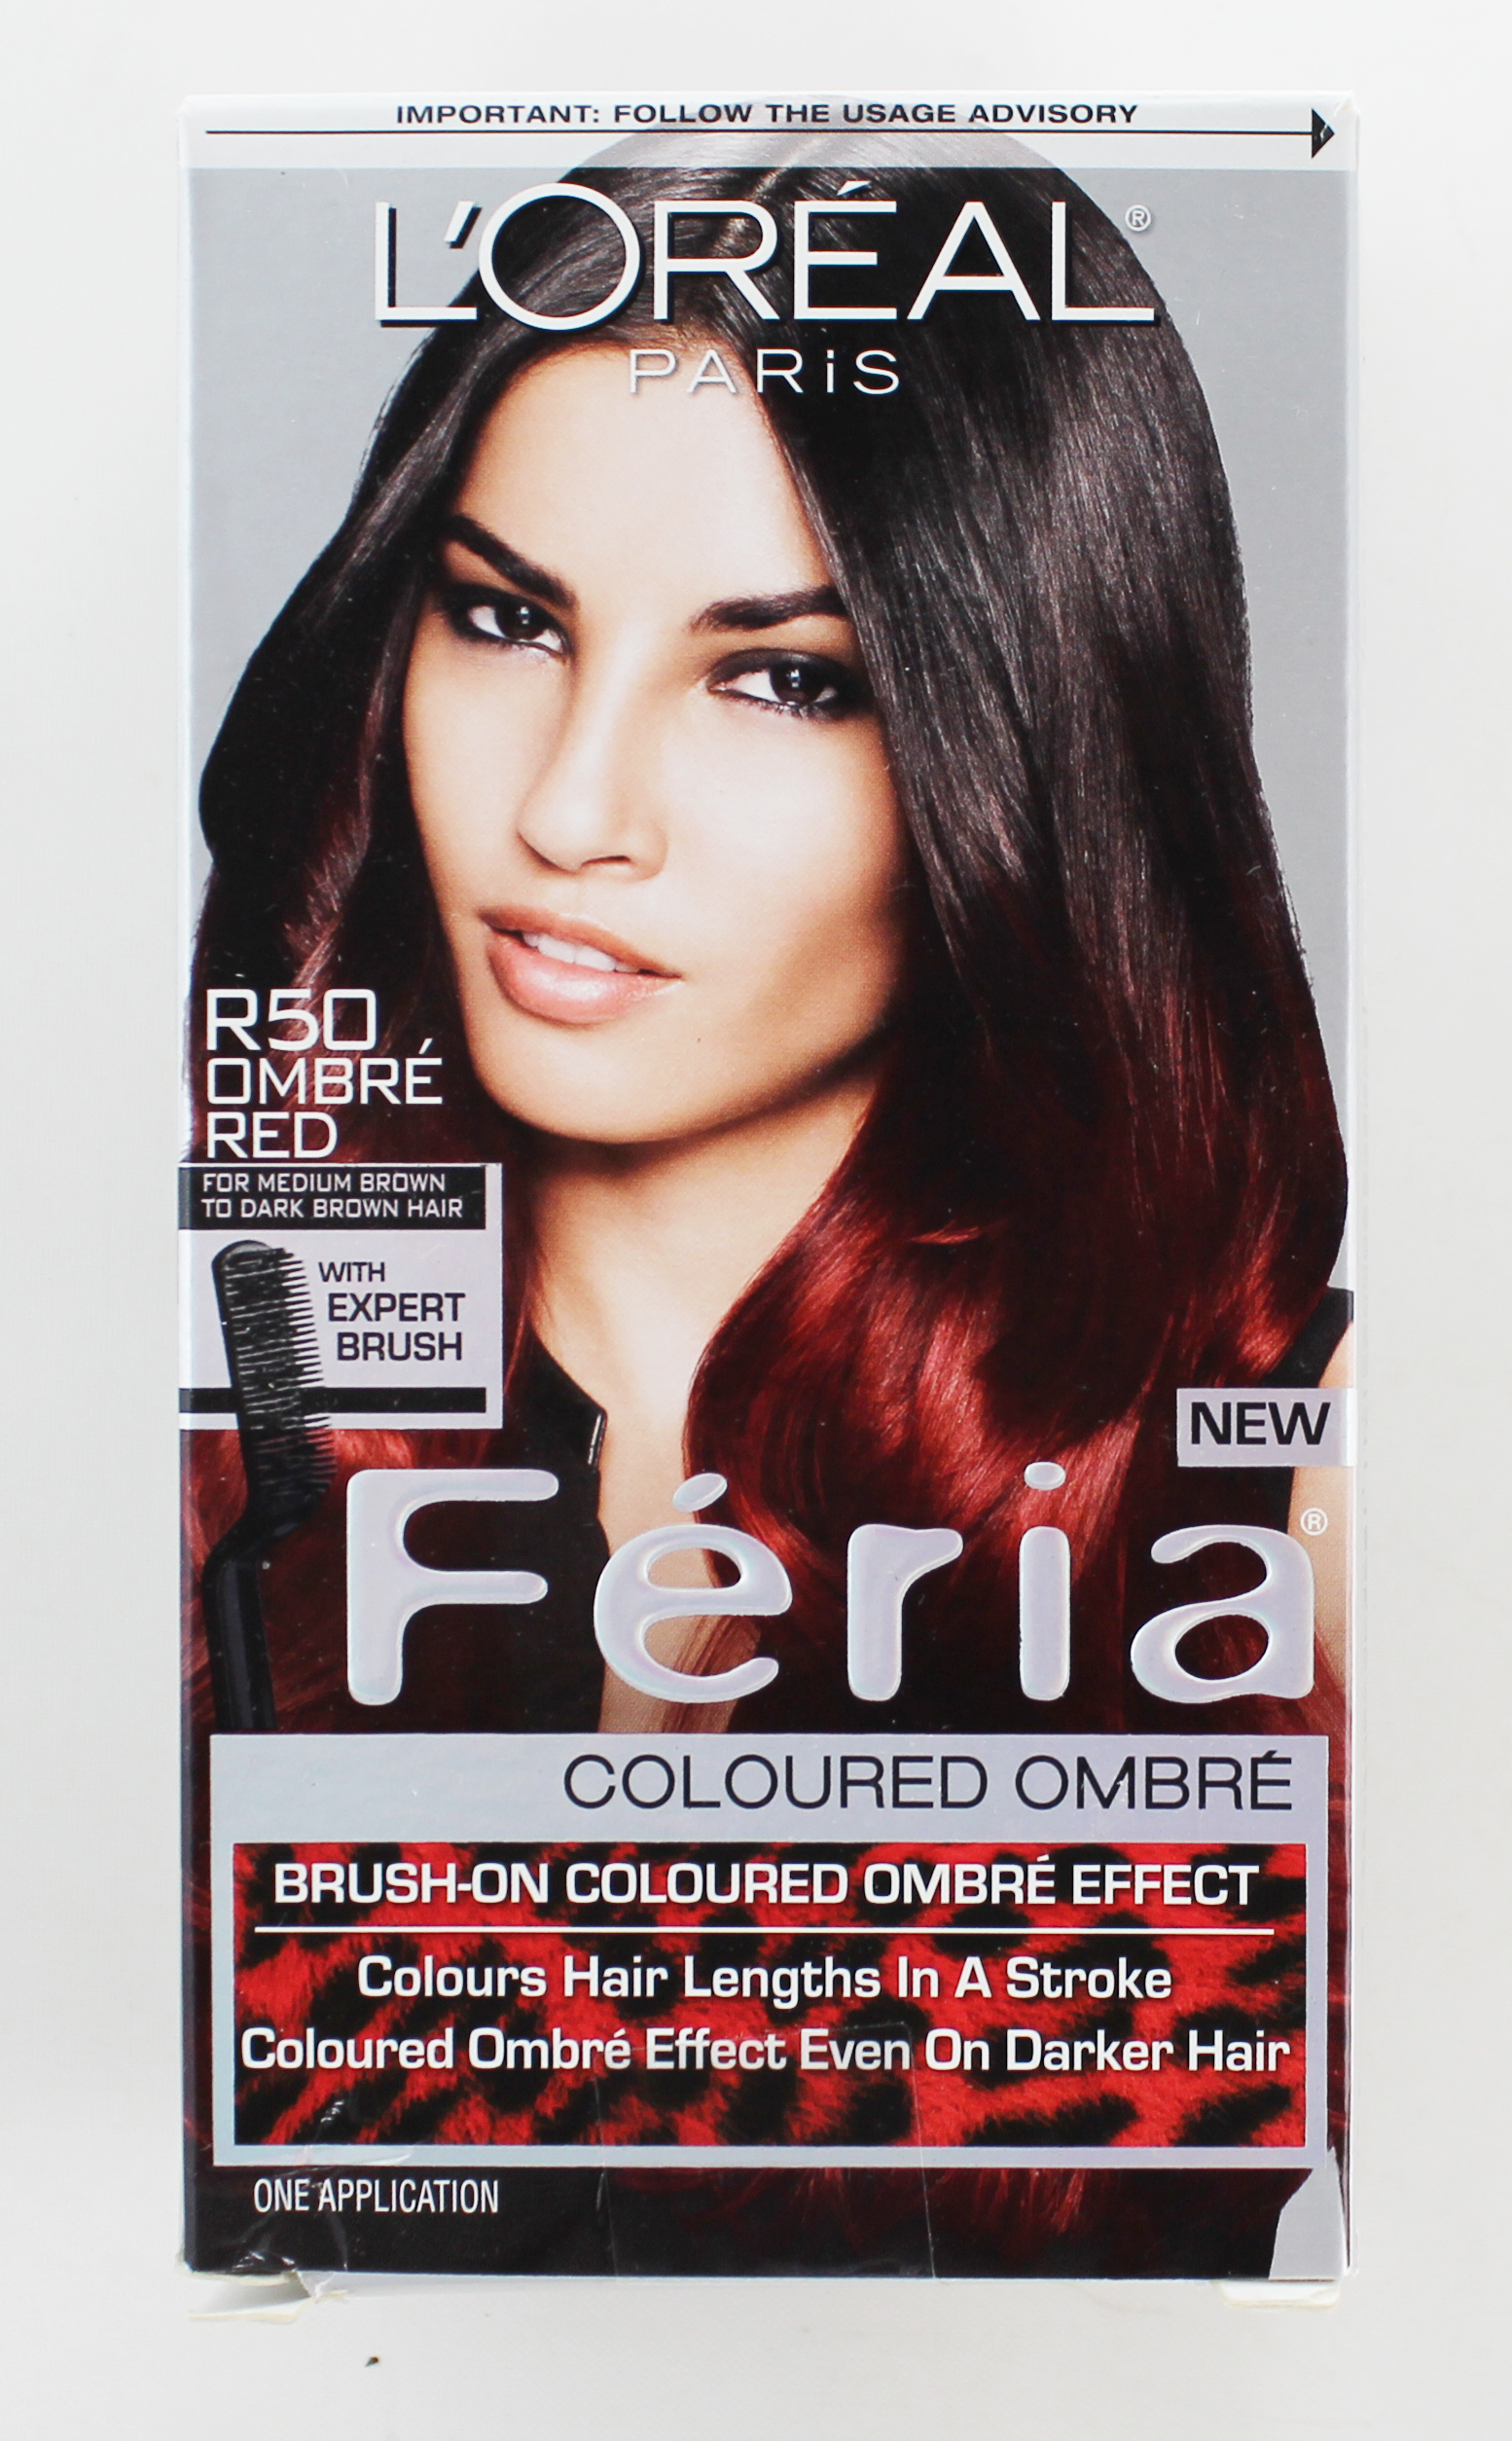 Loreal Feria Brush On Ombre Effect Hair Color R50 Ombre Red